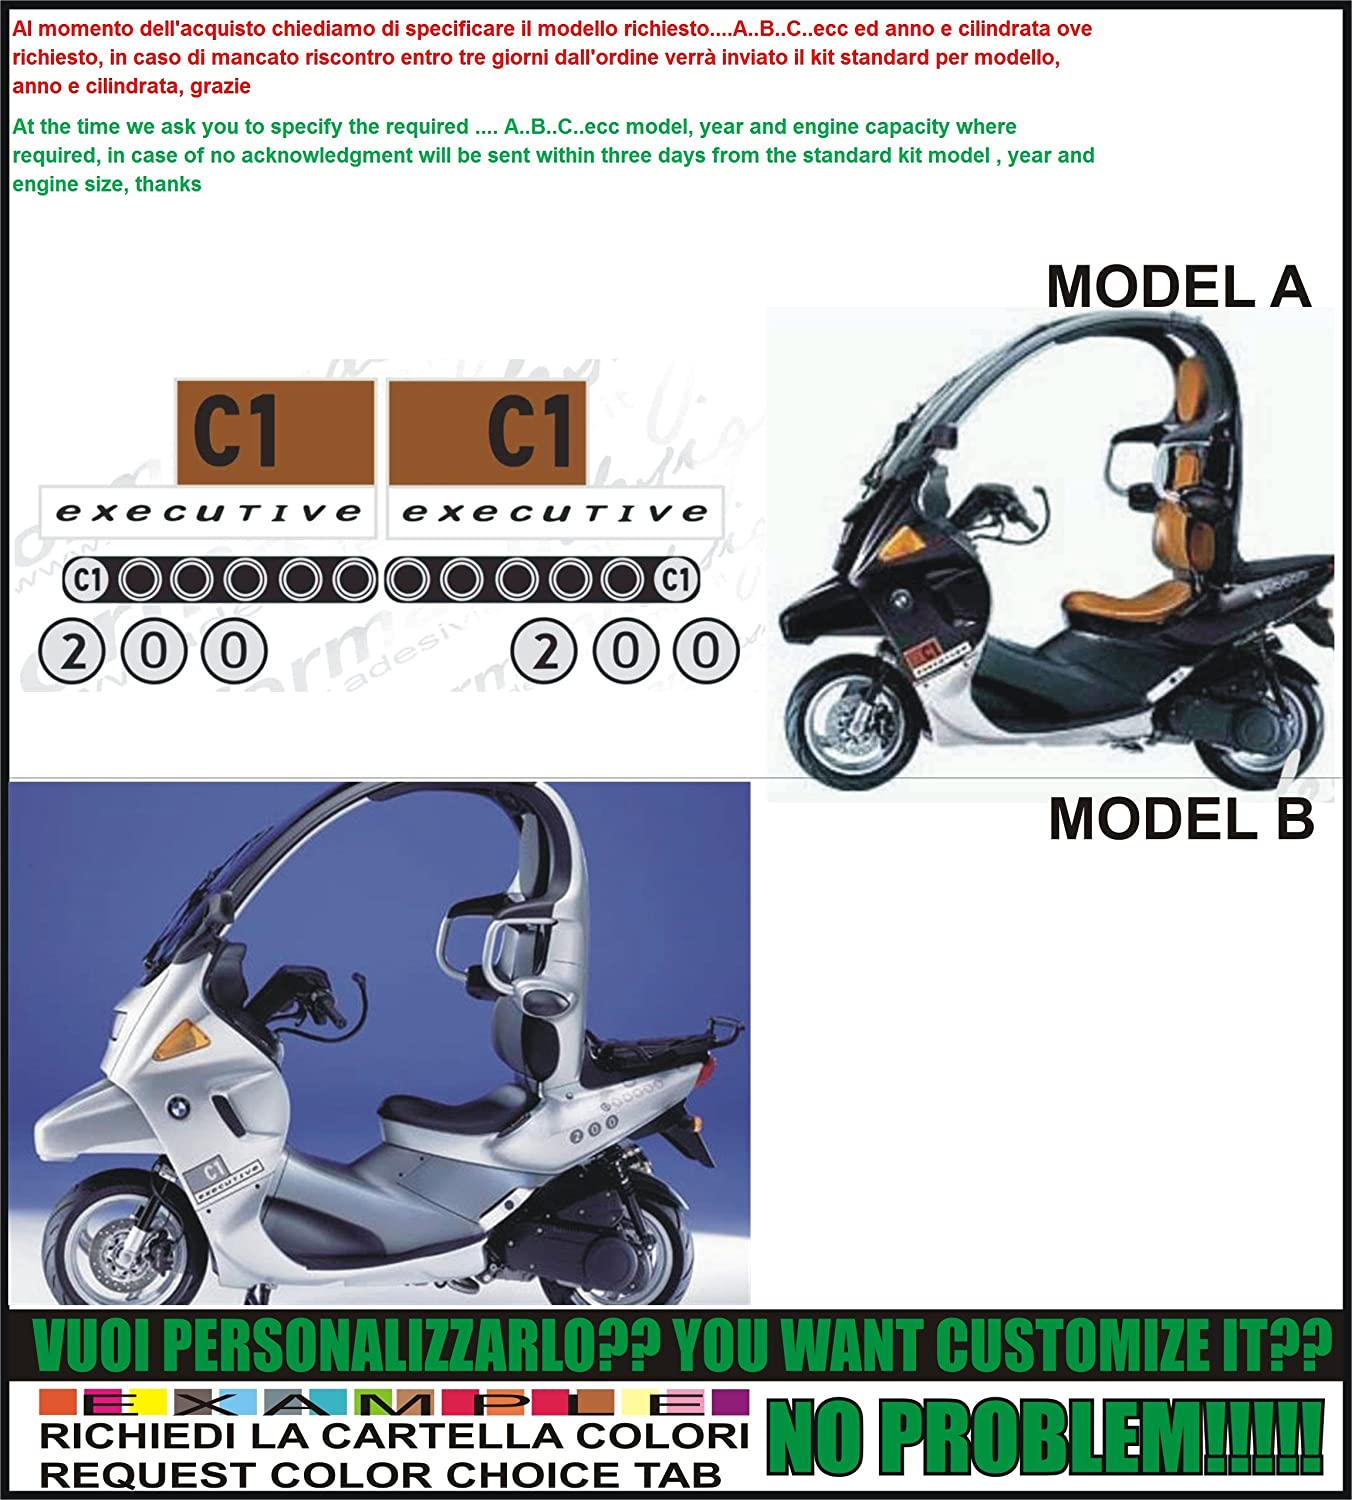 Kit Adesivi Decal Stickers Bmw C1 200 Executive Ability To